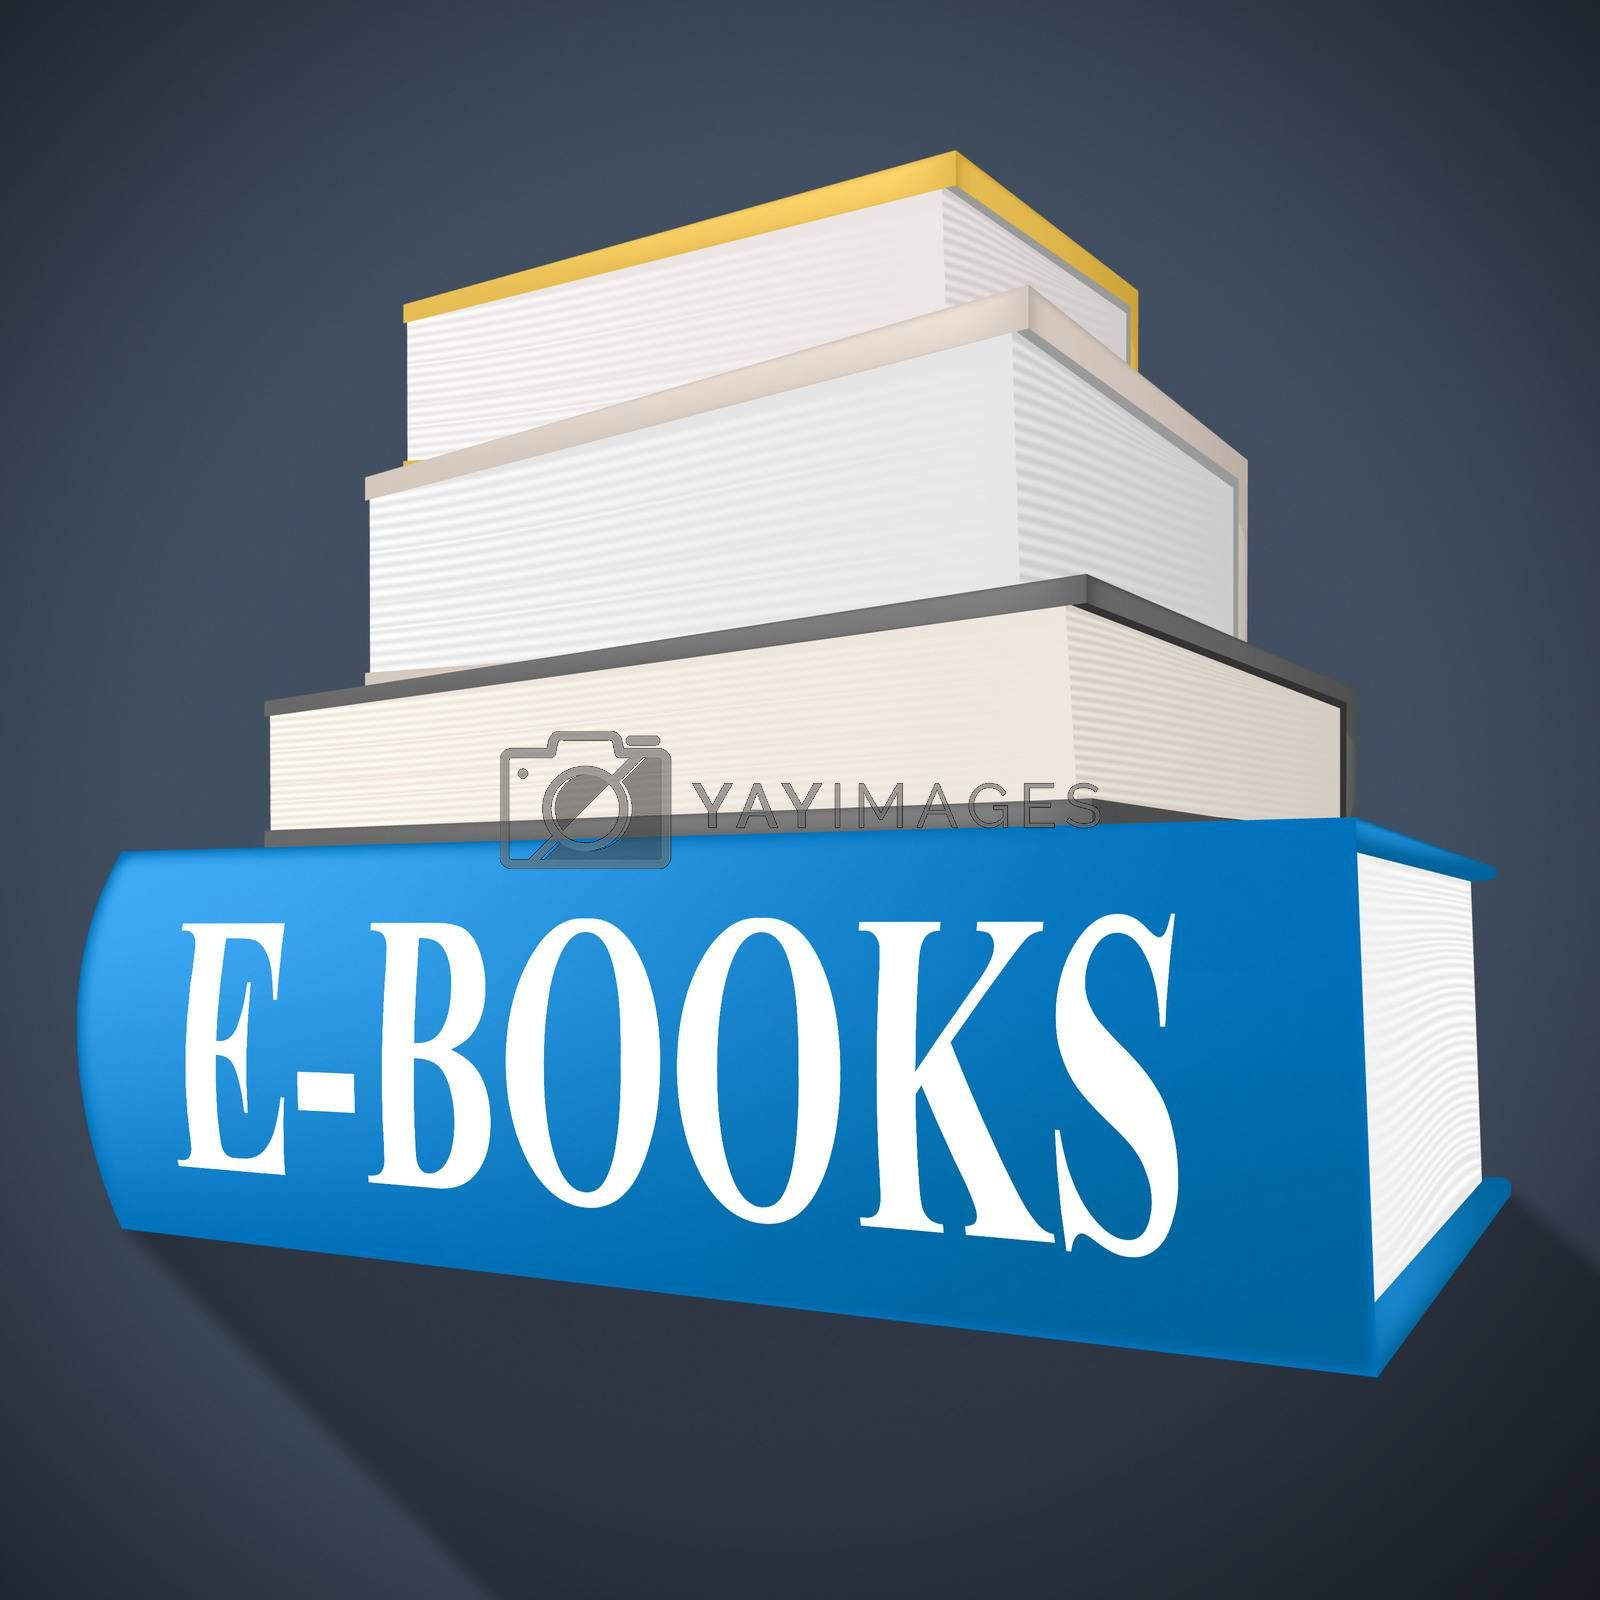 E Books Shows World Wide Web And Fiction by stuartmiles